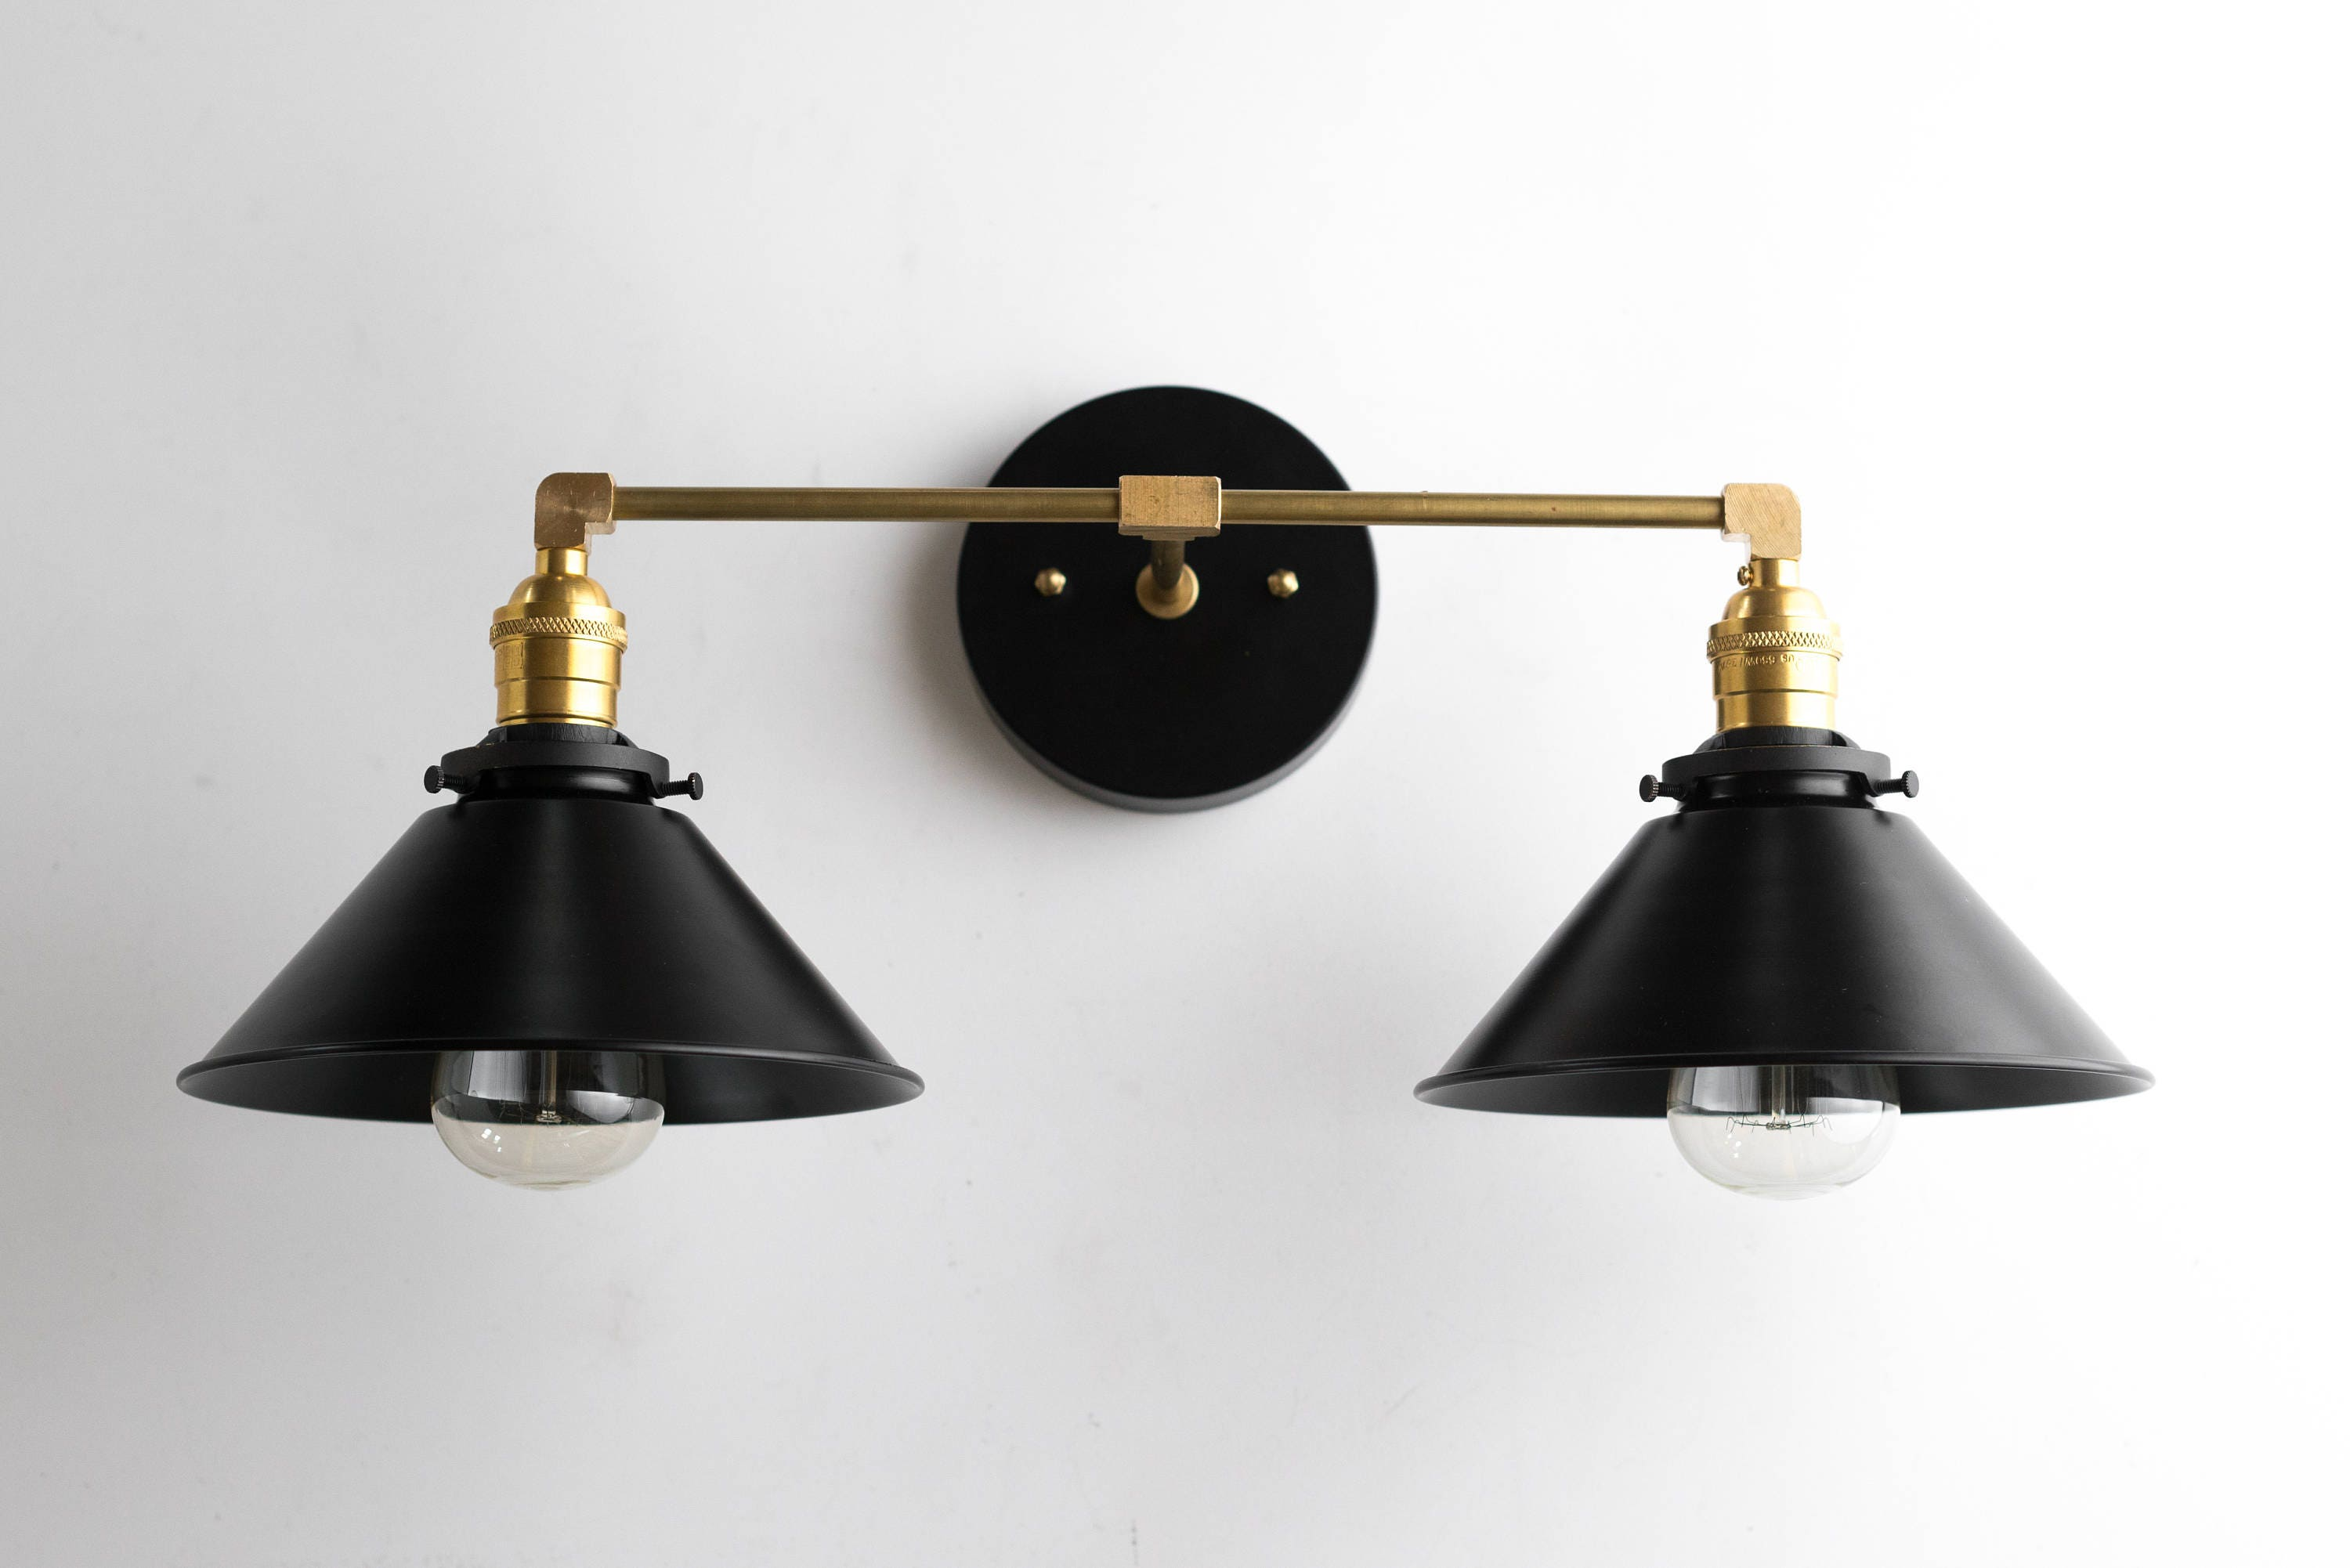 Black Brass Vanity Light Bathroom Wall Lamp Modern Fixture